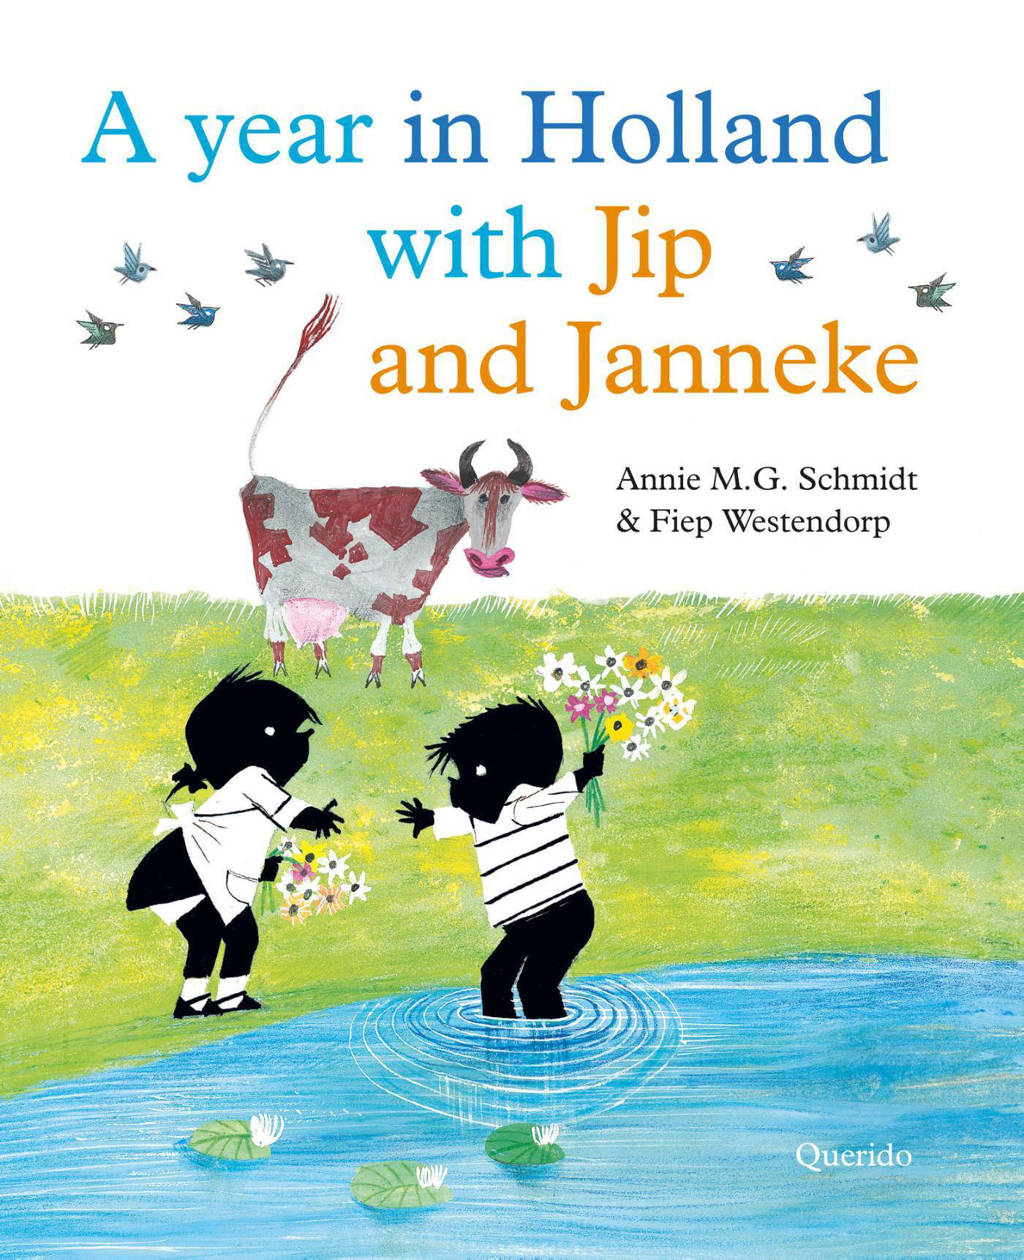 A year in Holland with Jip and Janneke - Annie M.G. Schmidt